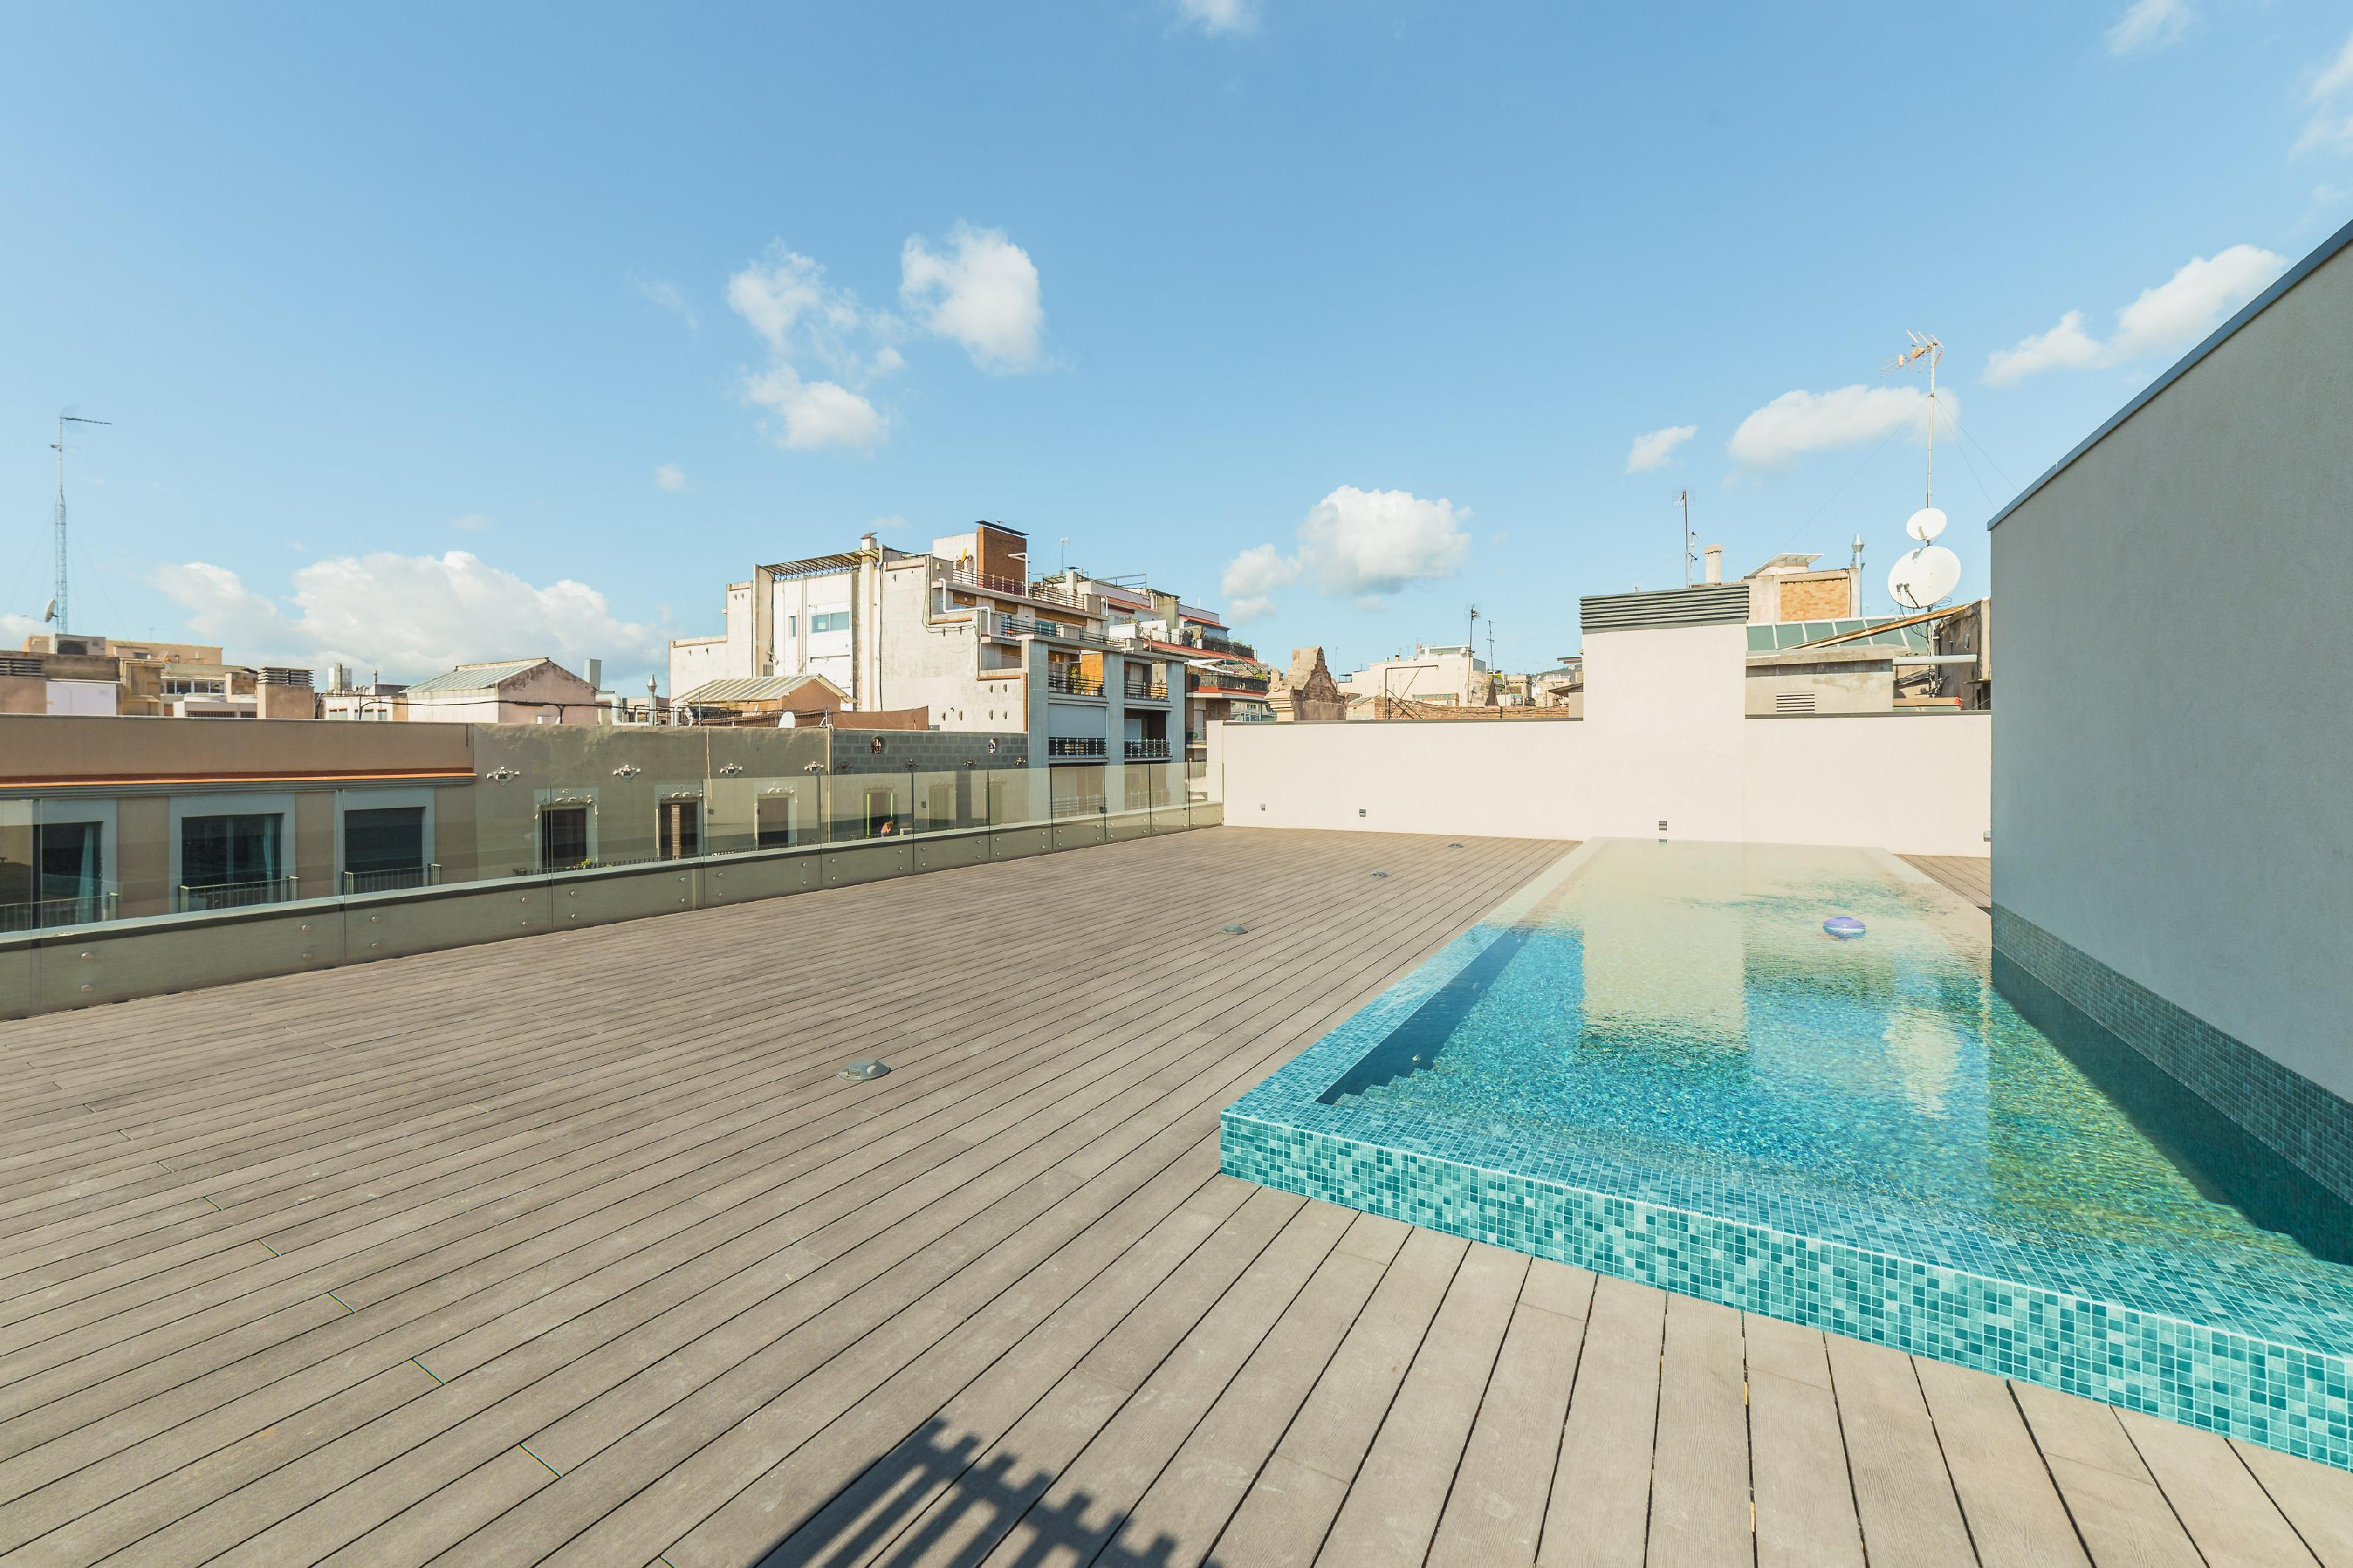 182176 Apartment for sale in Eixample, Old Left Eixample 4